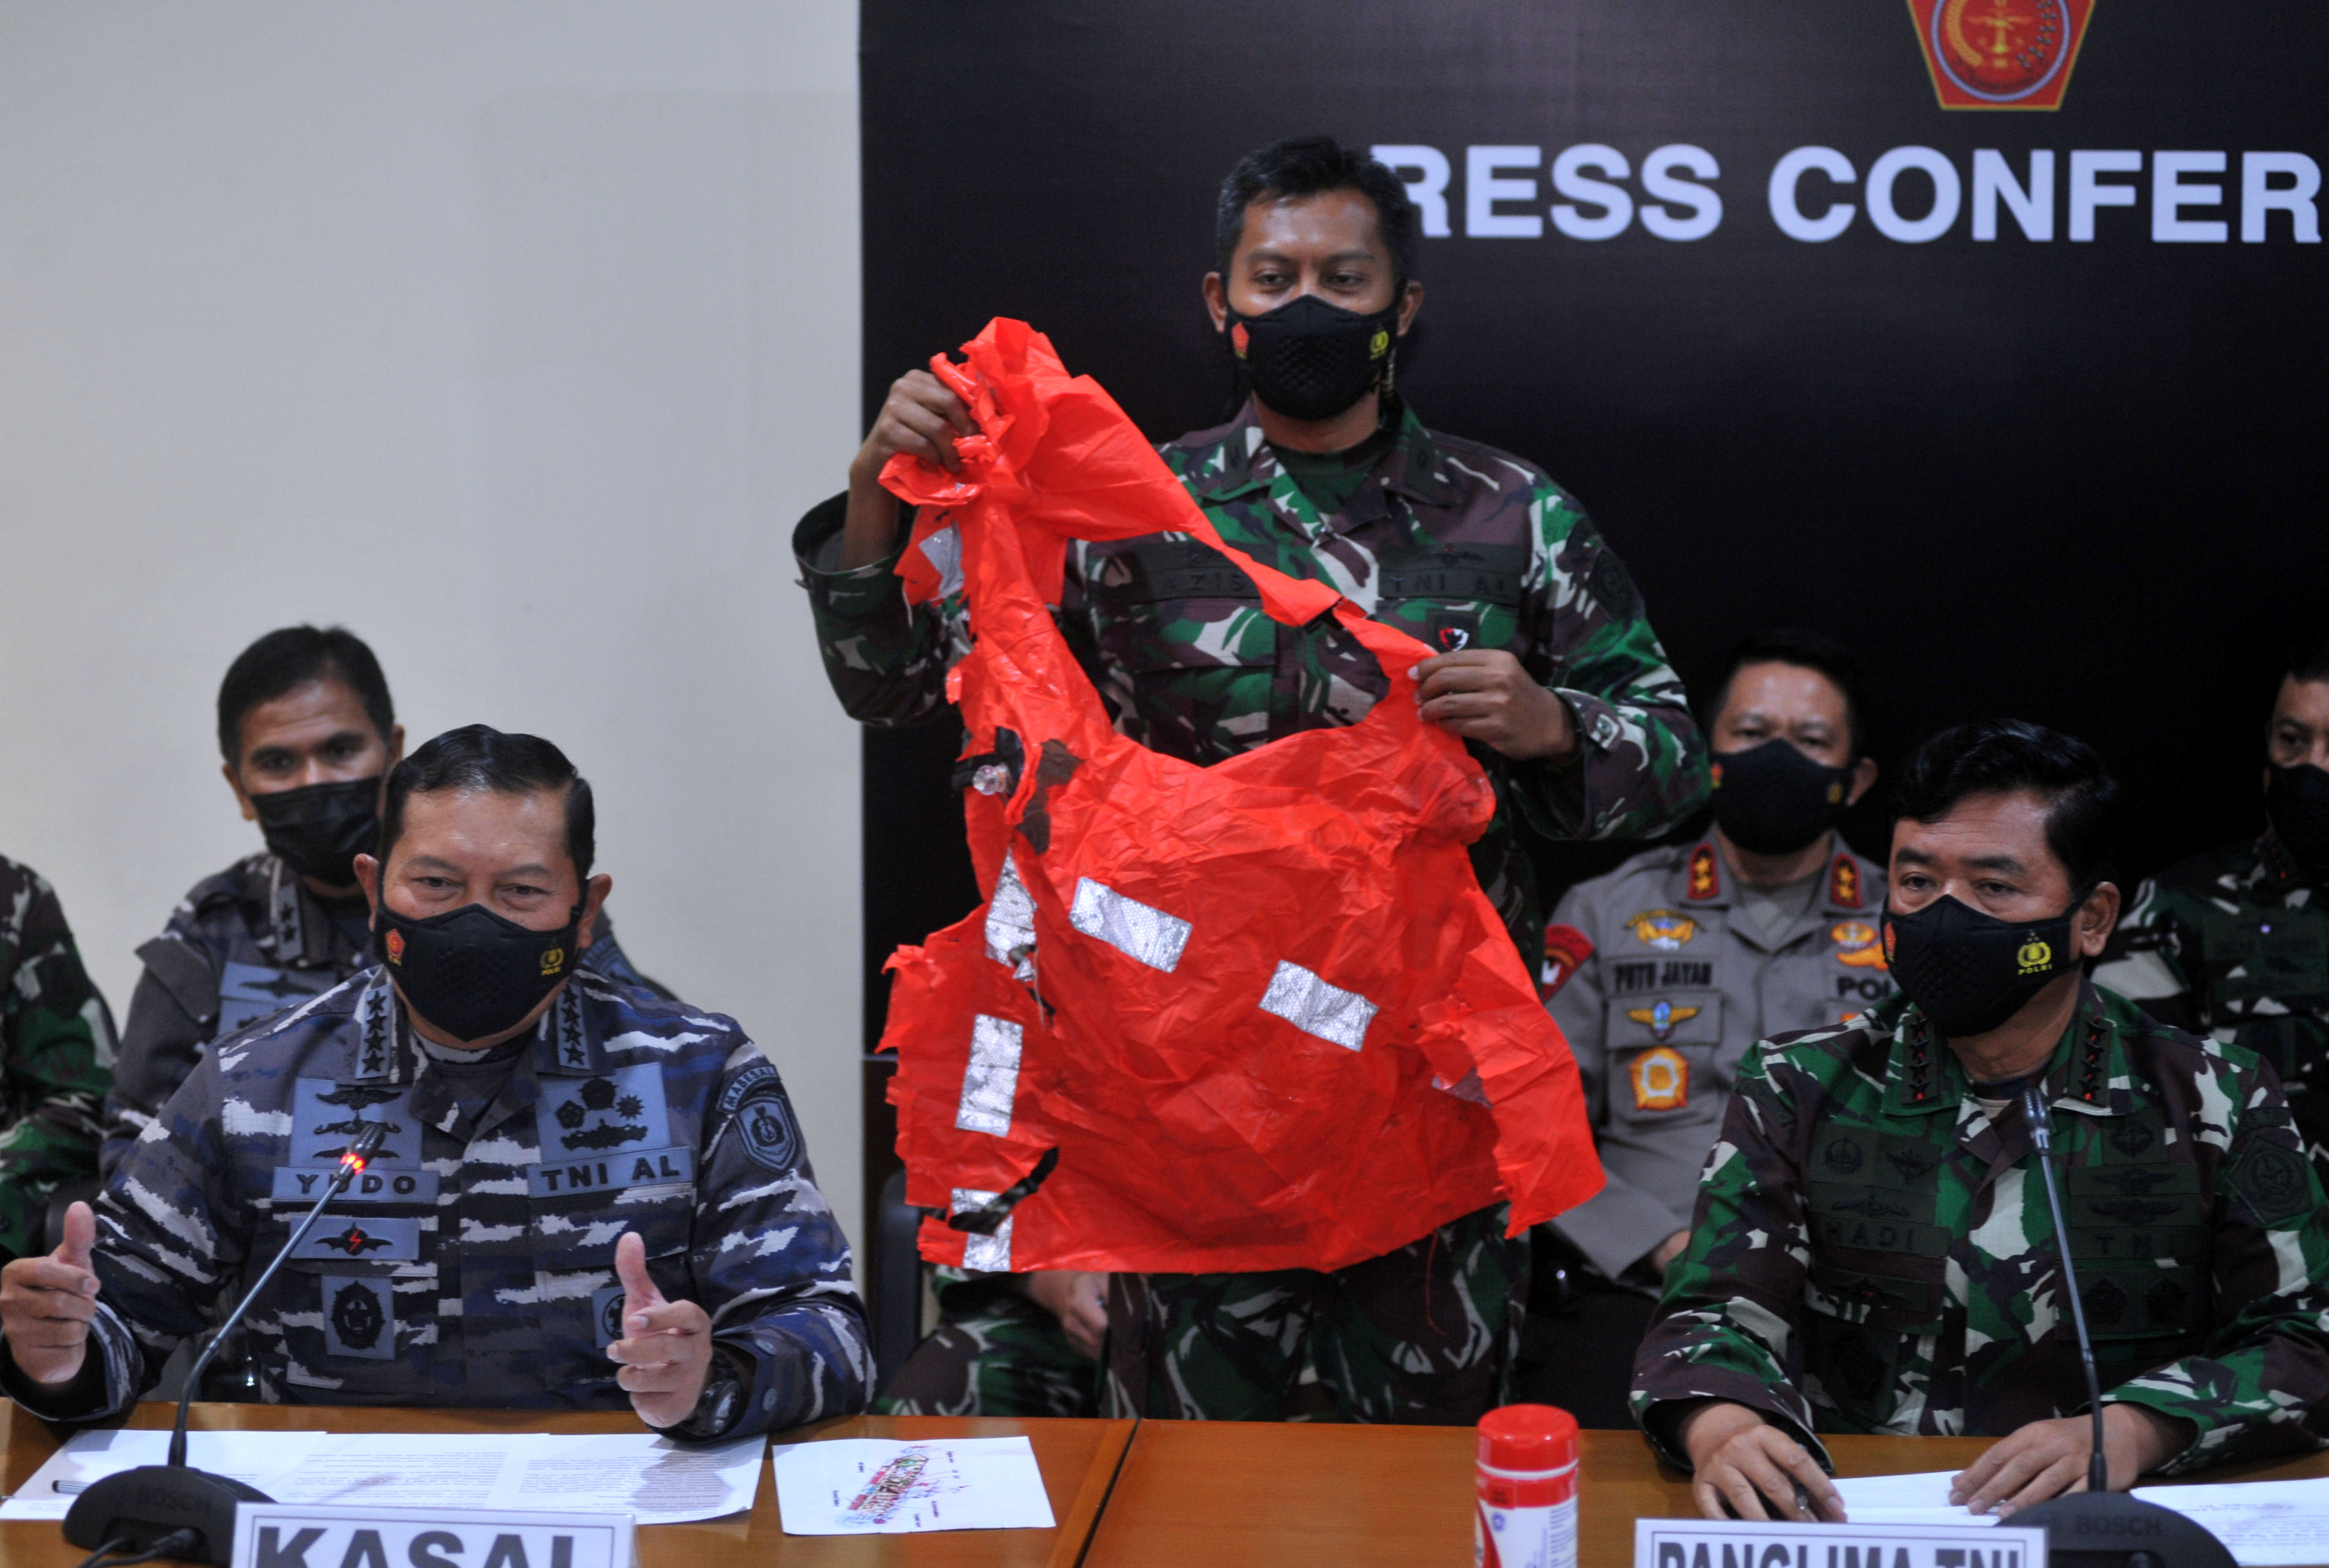 A military personnel holds an escape suit believed to be from the sunken Indonesian Navy KRI Nanggala-402 submarine during a media conference at I Gusti Ngurah Rai Airport in Bali, Indonesia April 25, 2021, in this photo taken by Antara Foto/Fikri Yusuf/via REUTERS